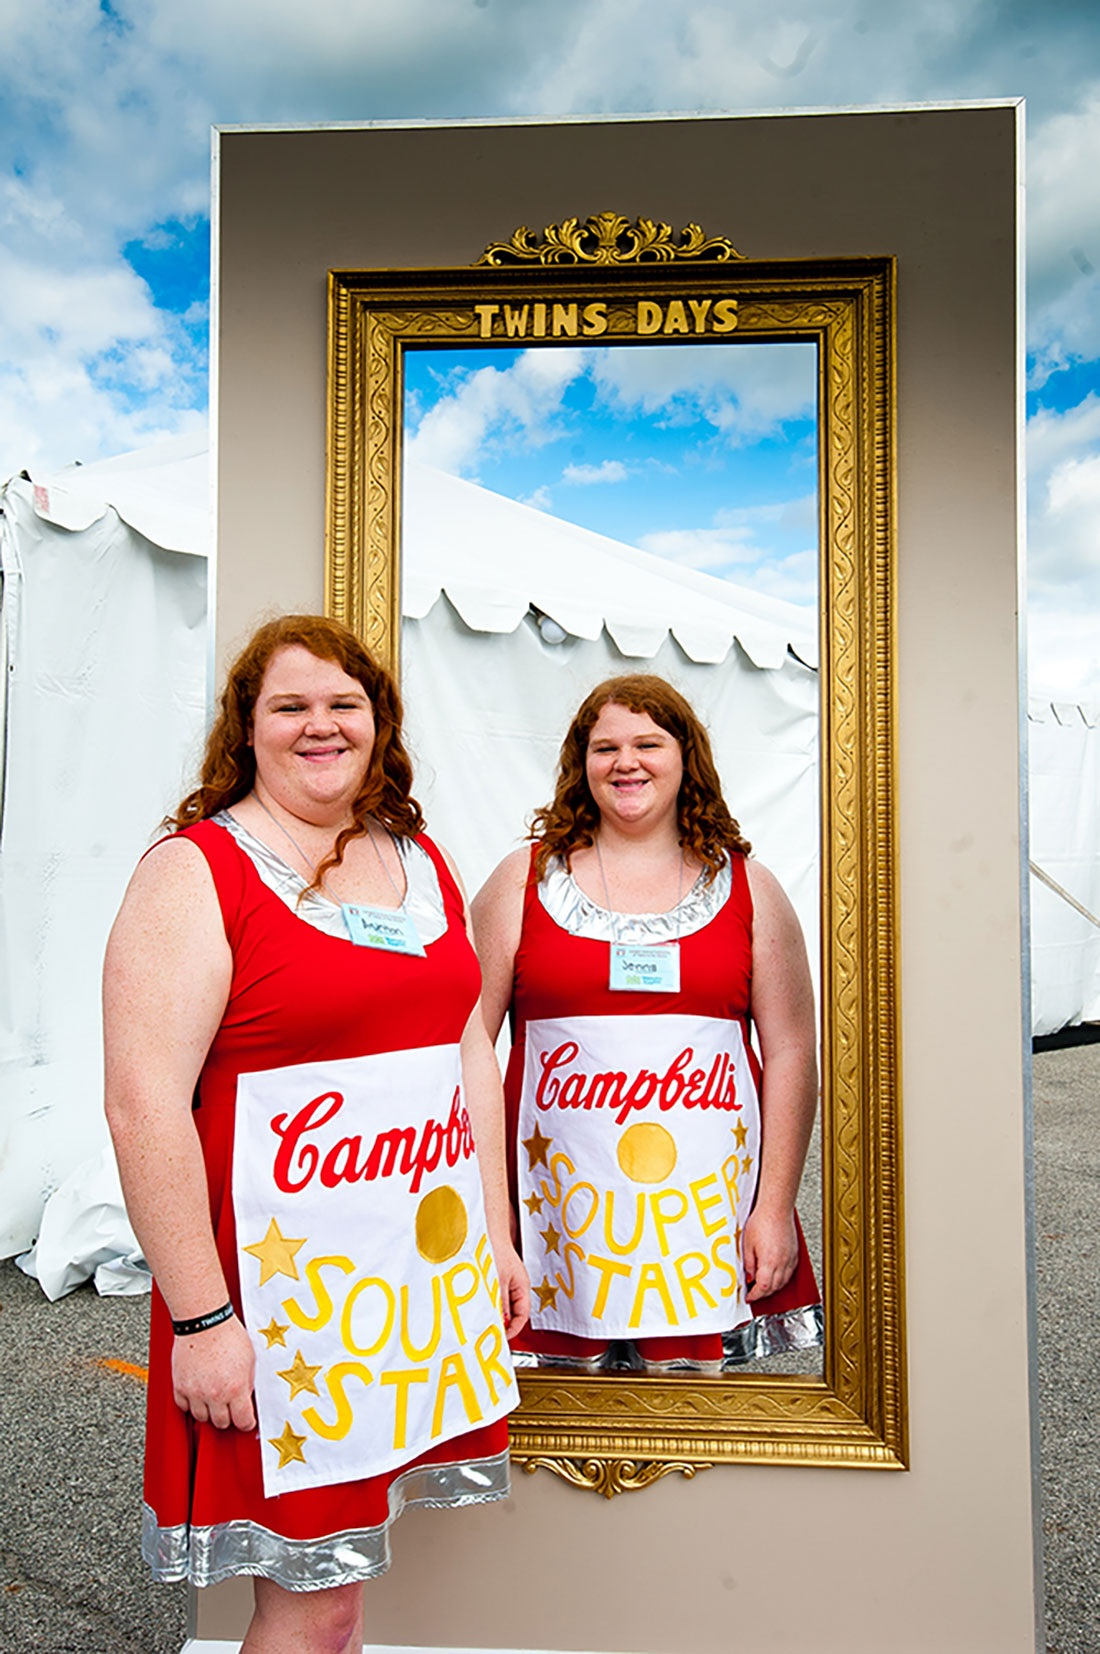 The Campbell Sisters from Ohio